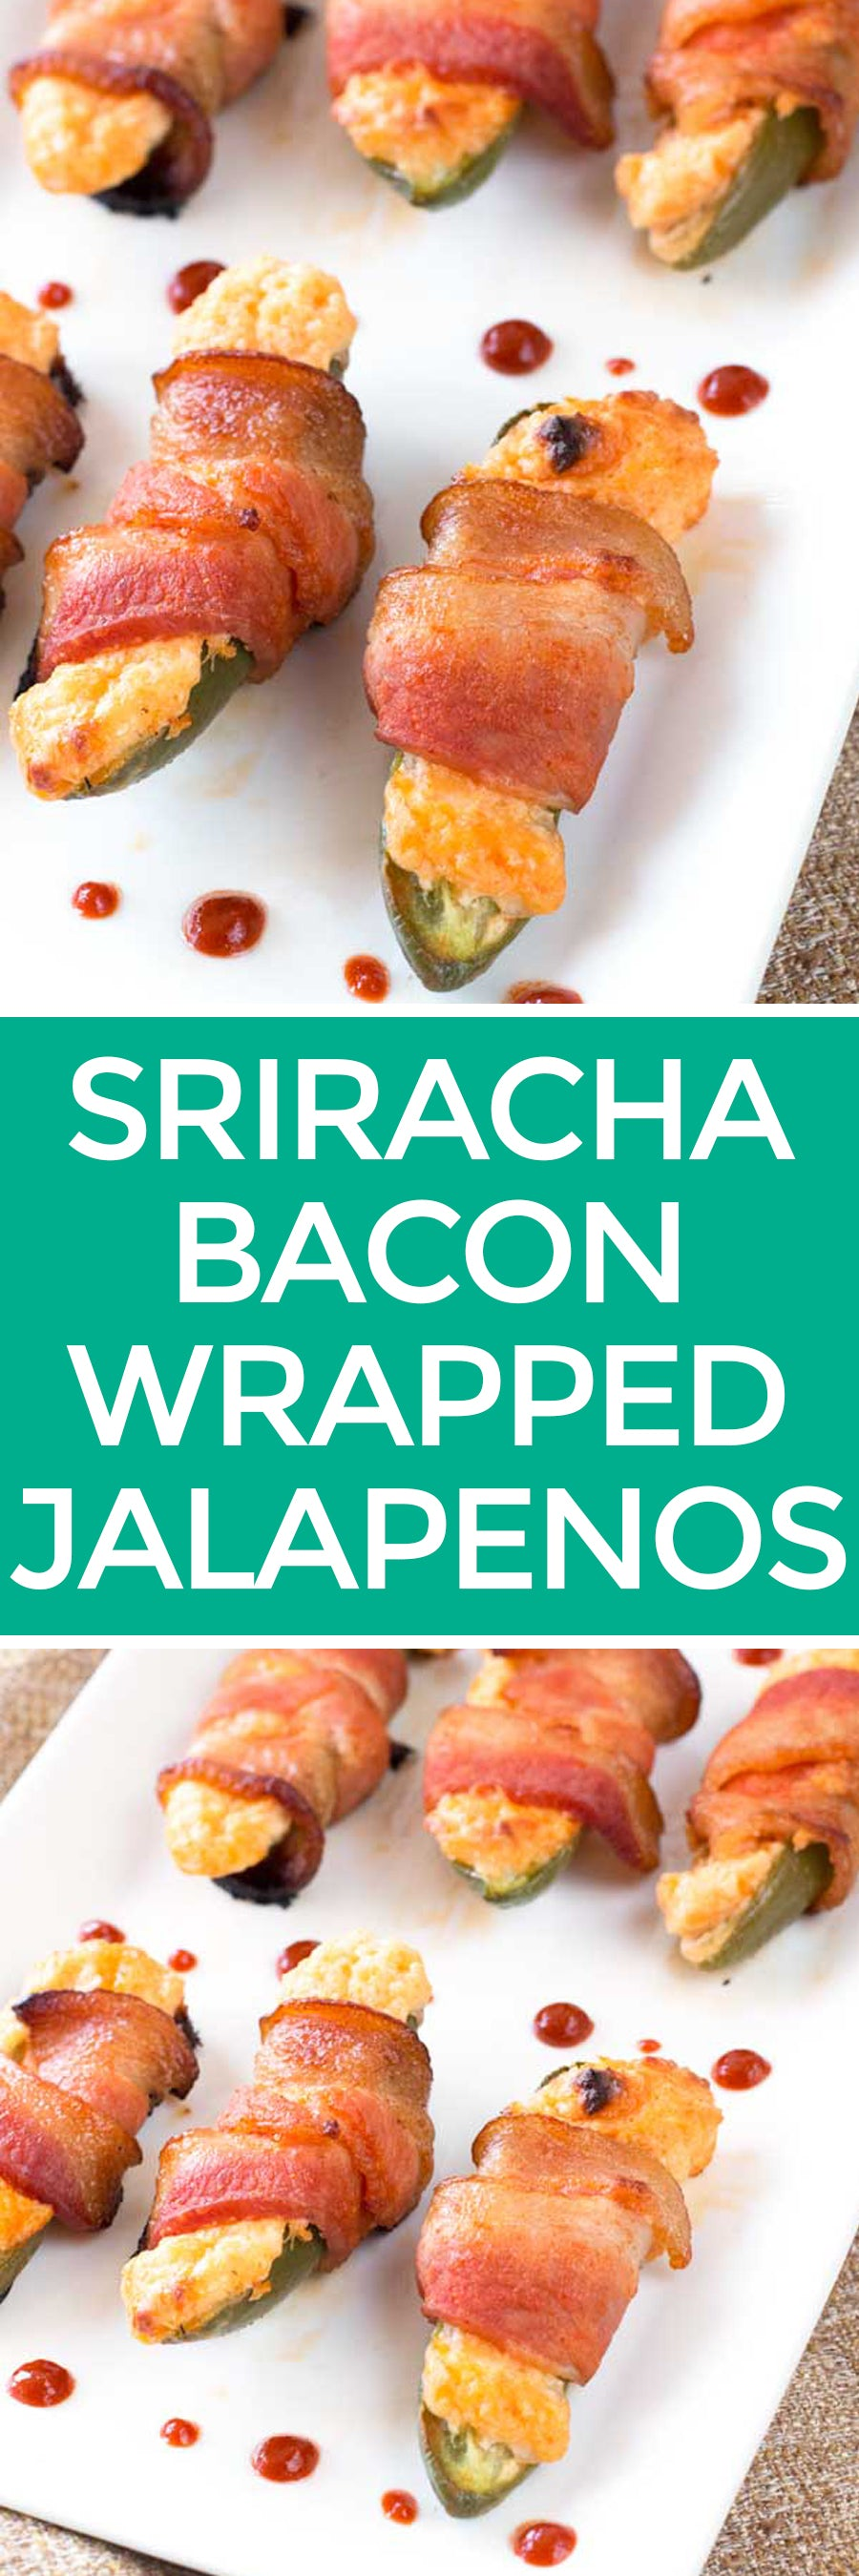 Sriracha Bacon Wrapped Jalapeños | pigofthemonth.com #sriracha #bacon #tailgating